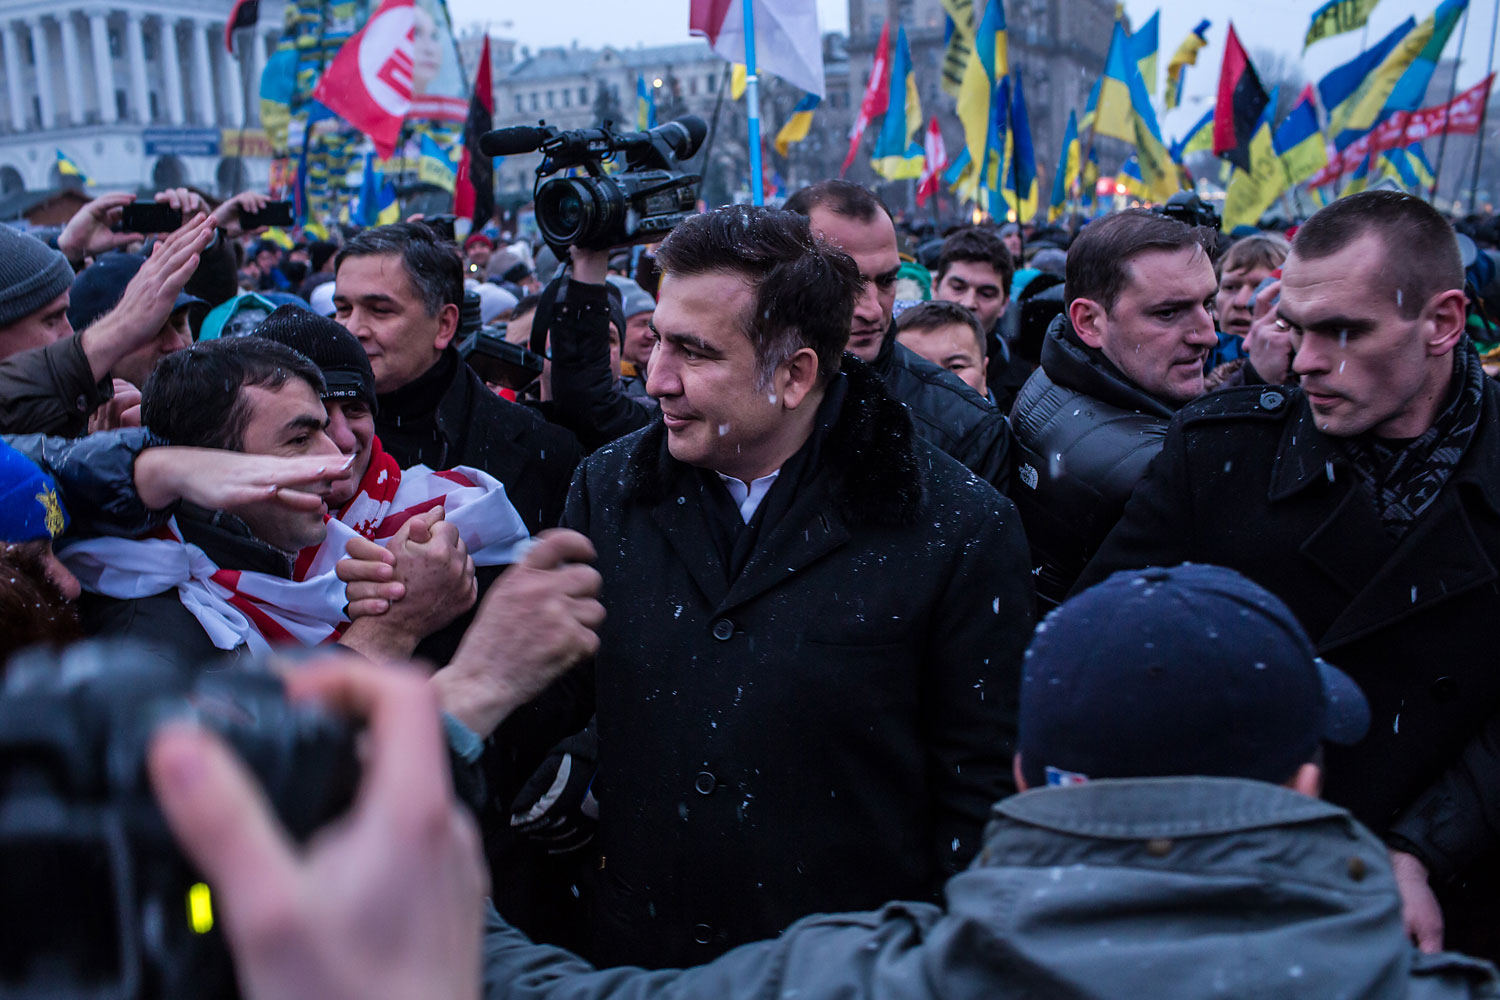 Mikheil Saakashvili, the former President of Georgia, in Independence Square in Kiev, Ukraine, in support of antigovernment protesters on Dec. 7, 2013